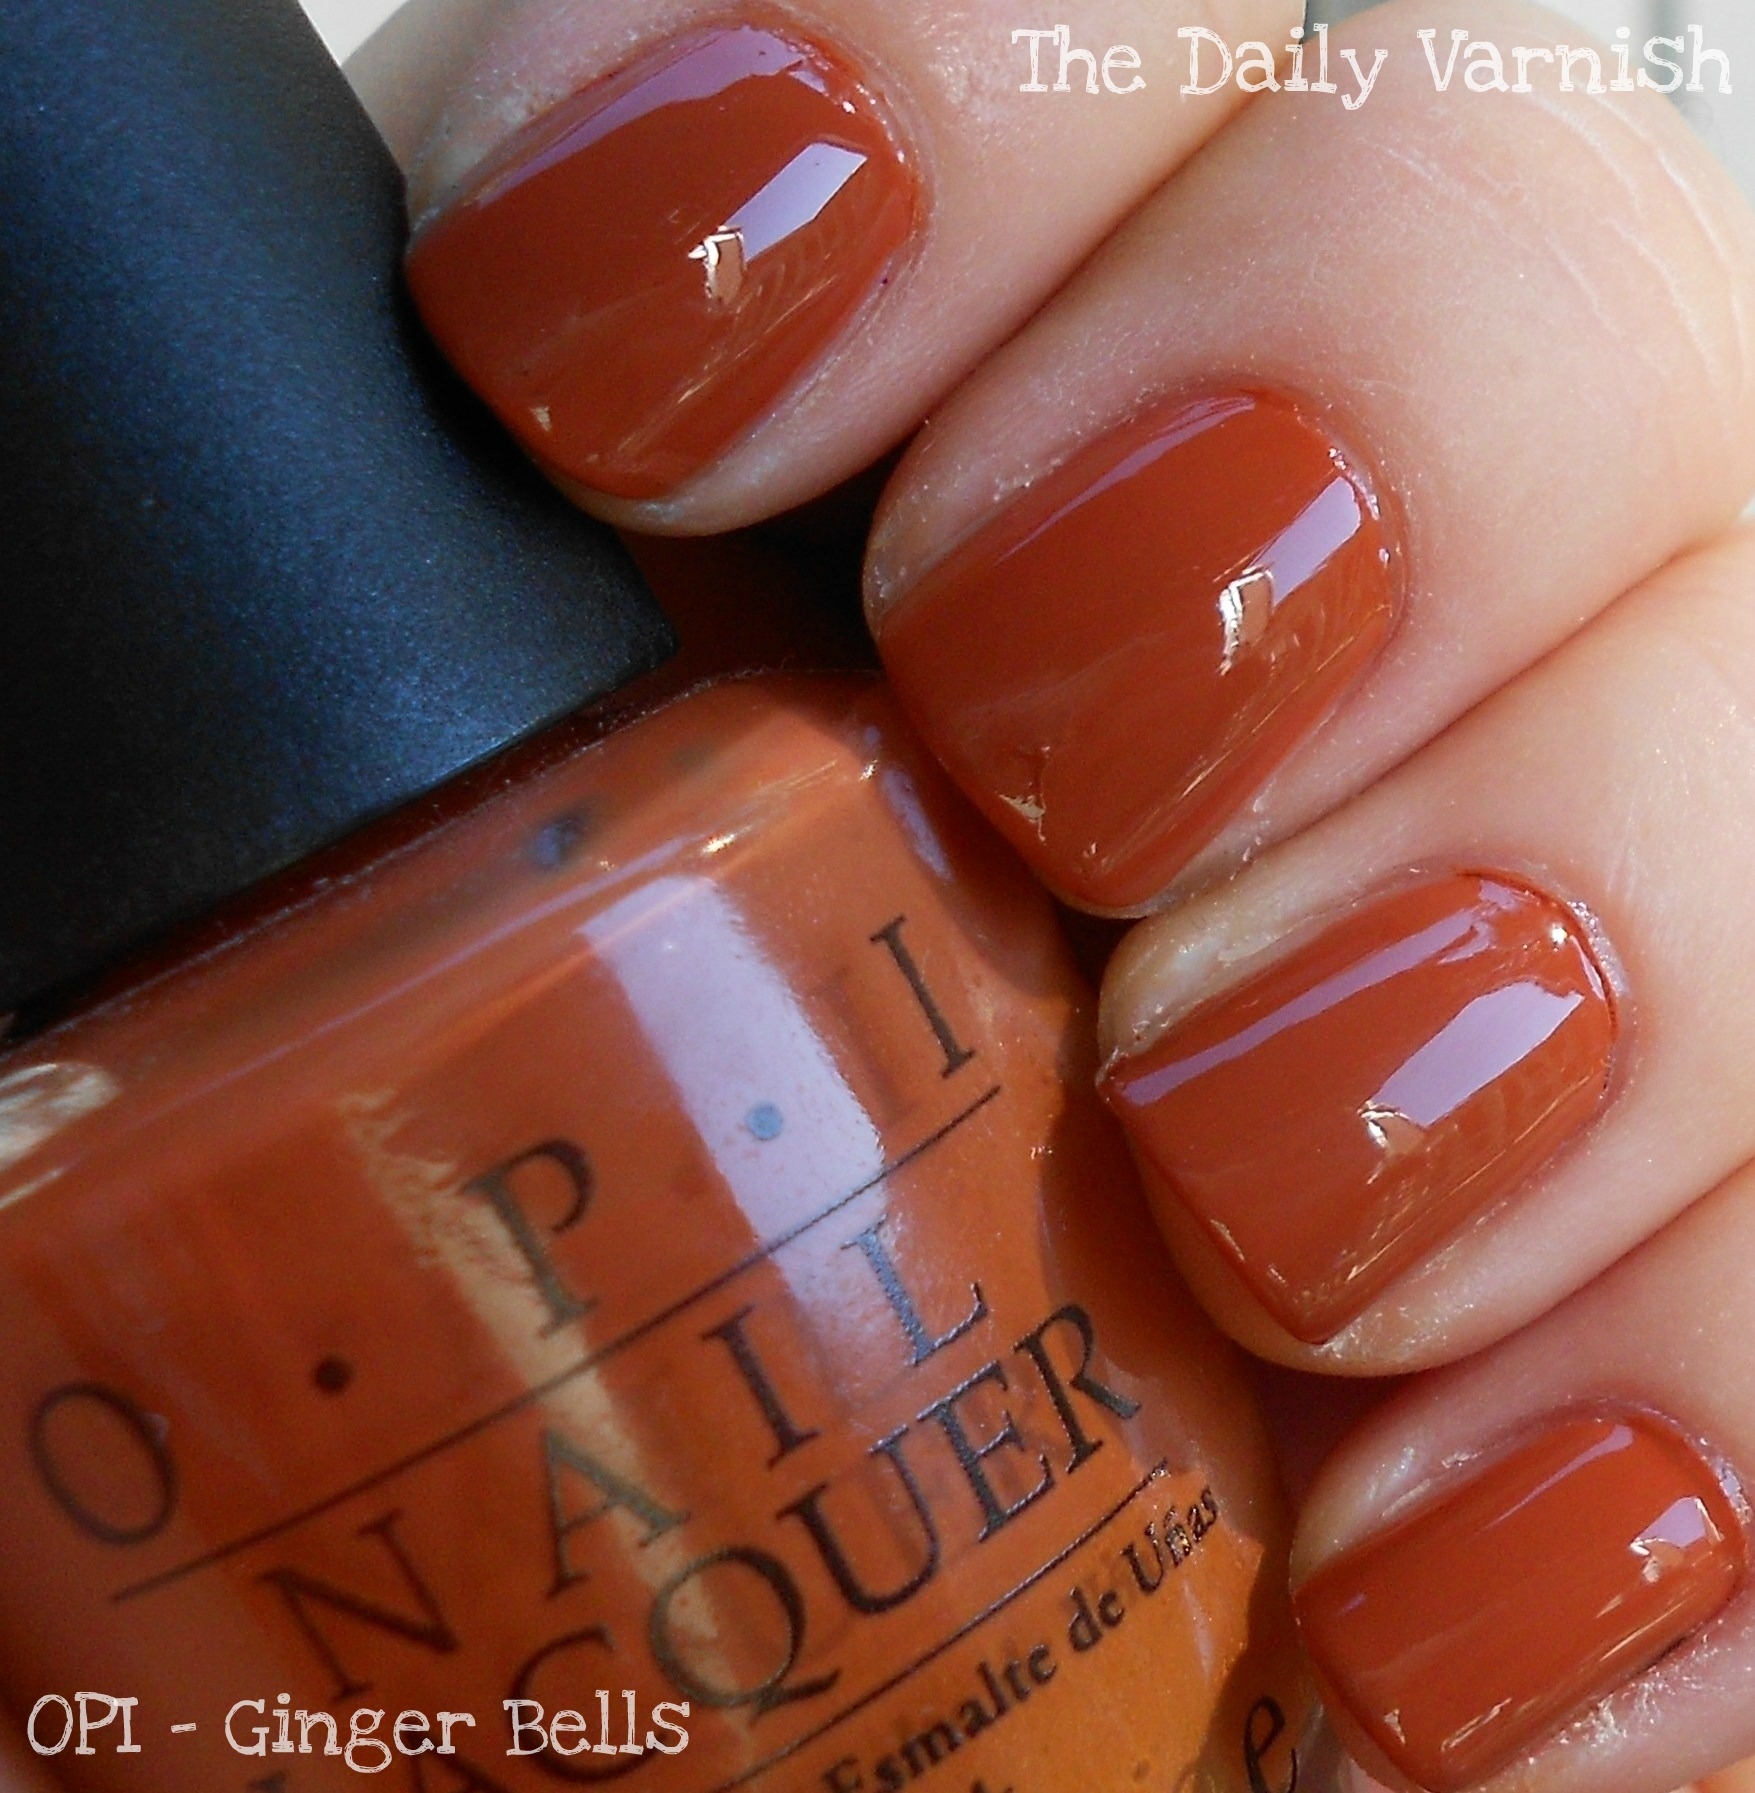 Fall Favorite: OPI Ginger Bells – The Daily Varnish